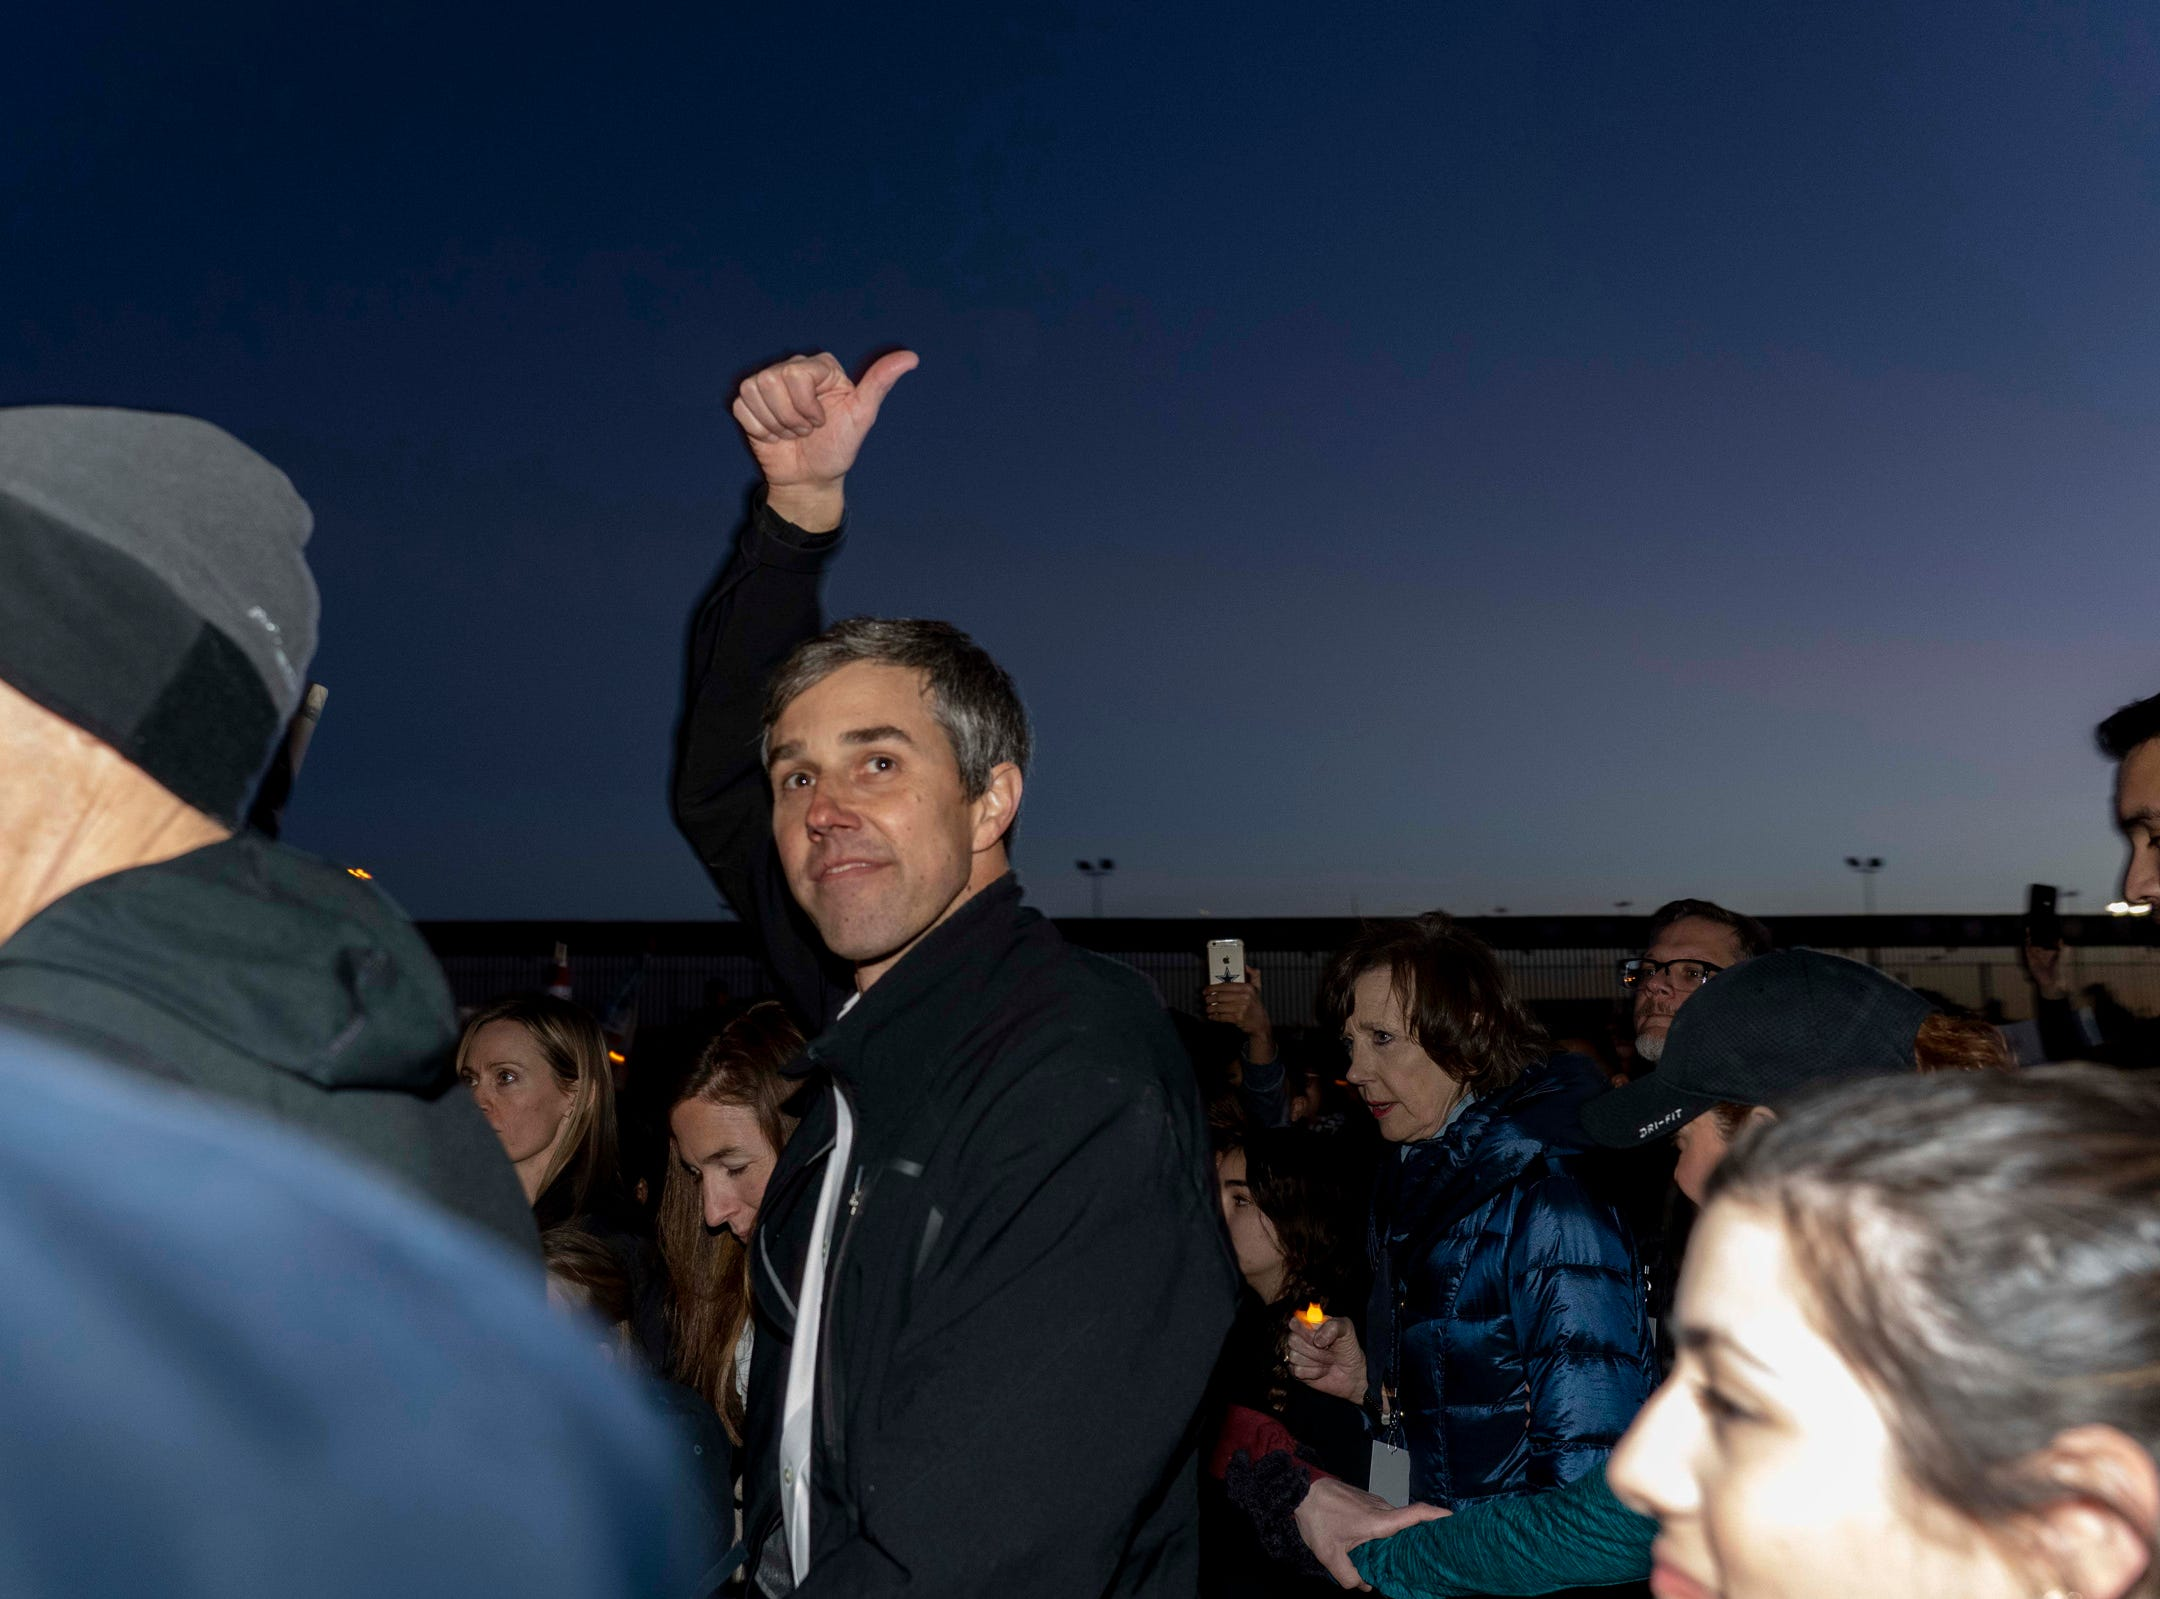 2/11/19 6:06:46 PM -- El Paso, TX, U.S.A  -- A counter-rally led by former U.S. Senate candidate Beto O'Rourke joined the March for Truth with hundreds of people along with Border Network for Human Rights, Women's March, to protest against President Trump campaign rally near El Paso County Coliseum on Feb. 11, 2019.